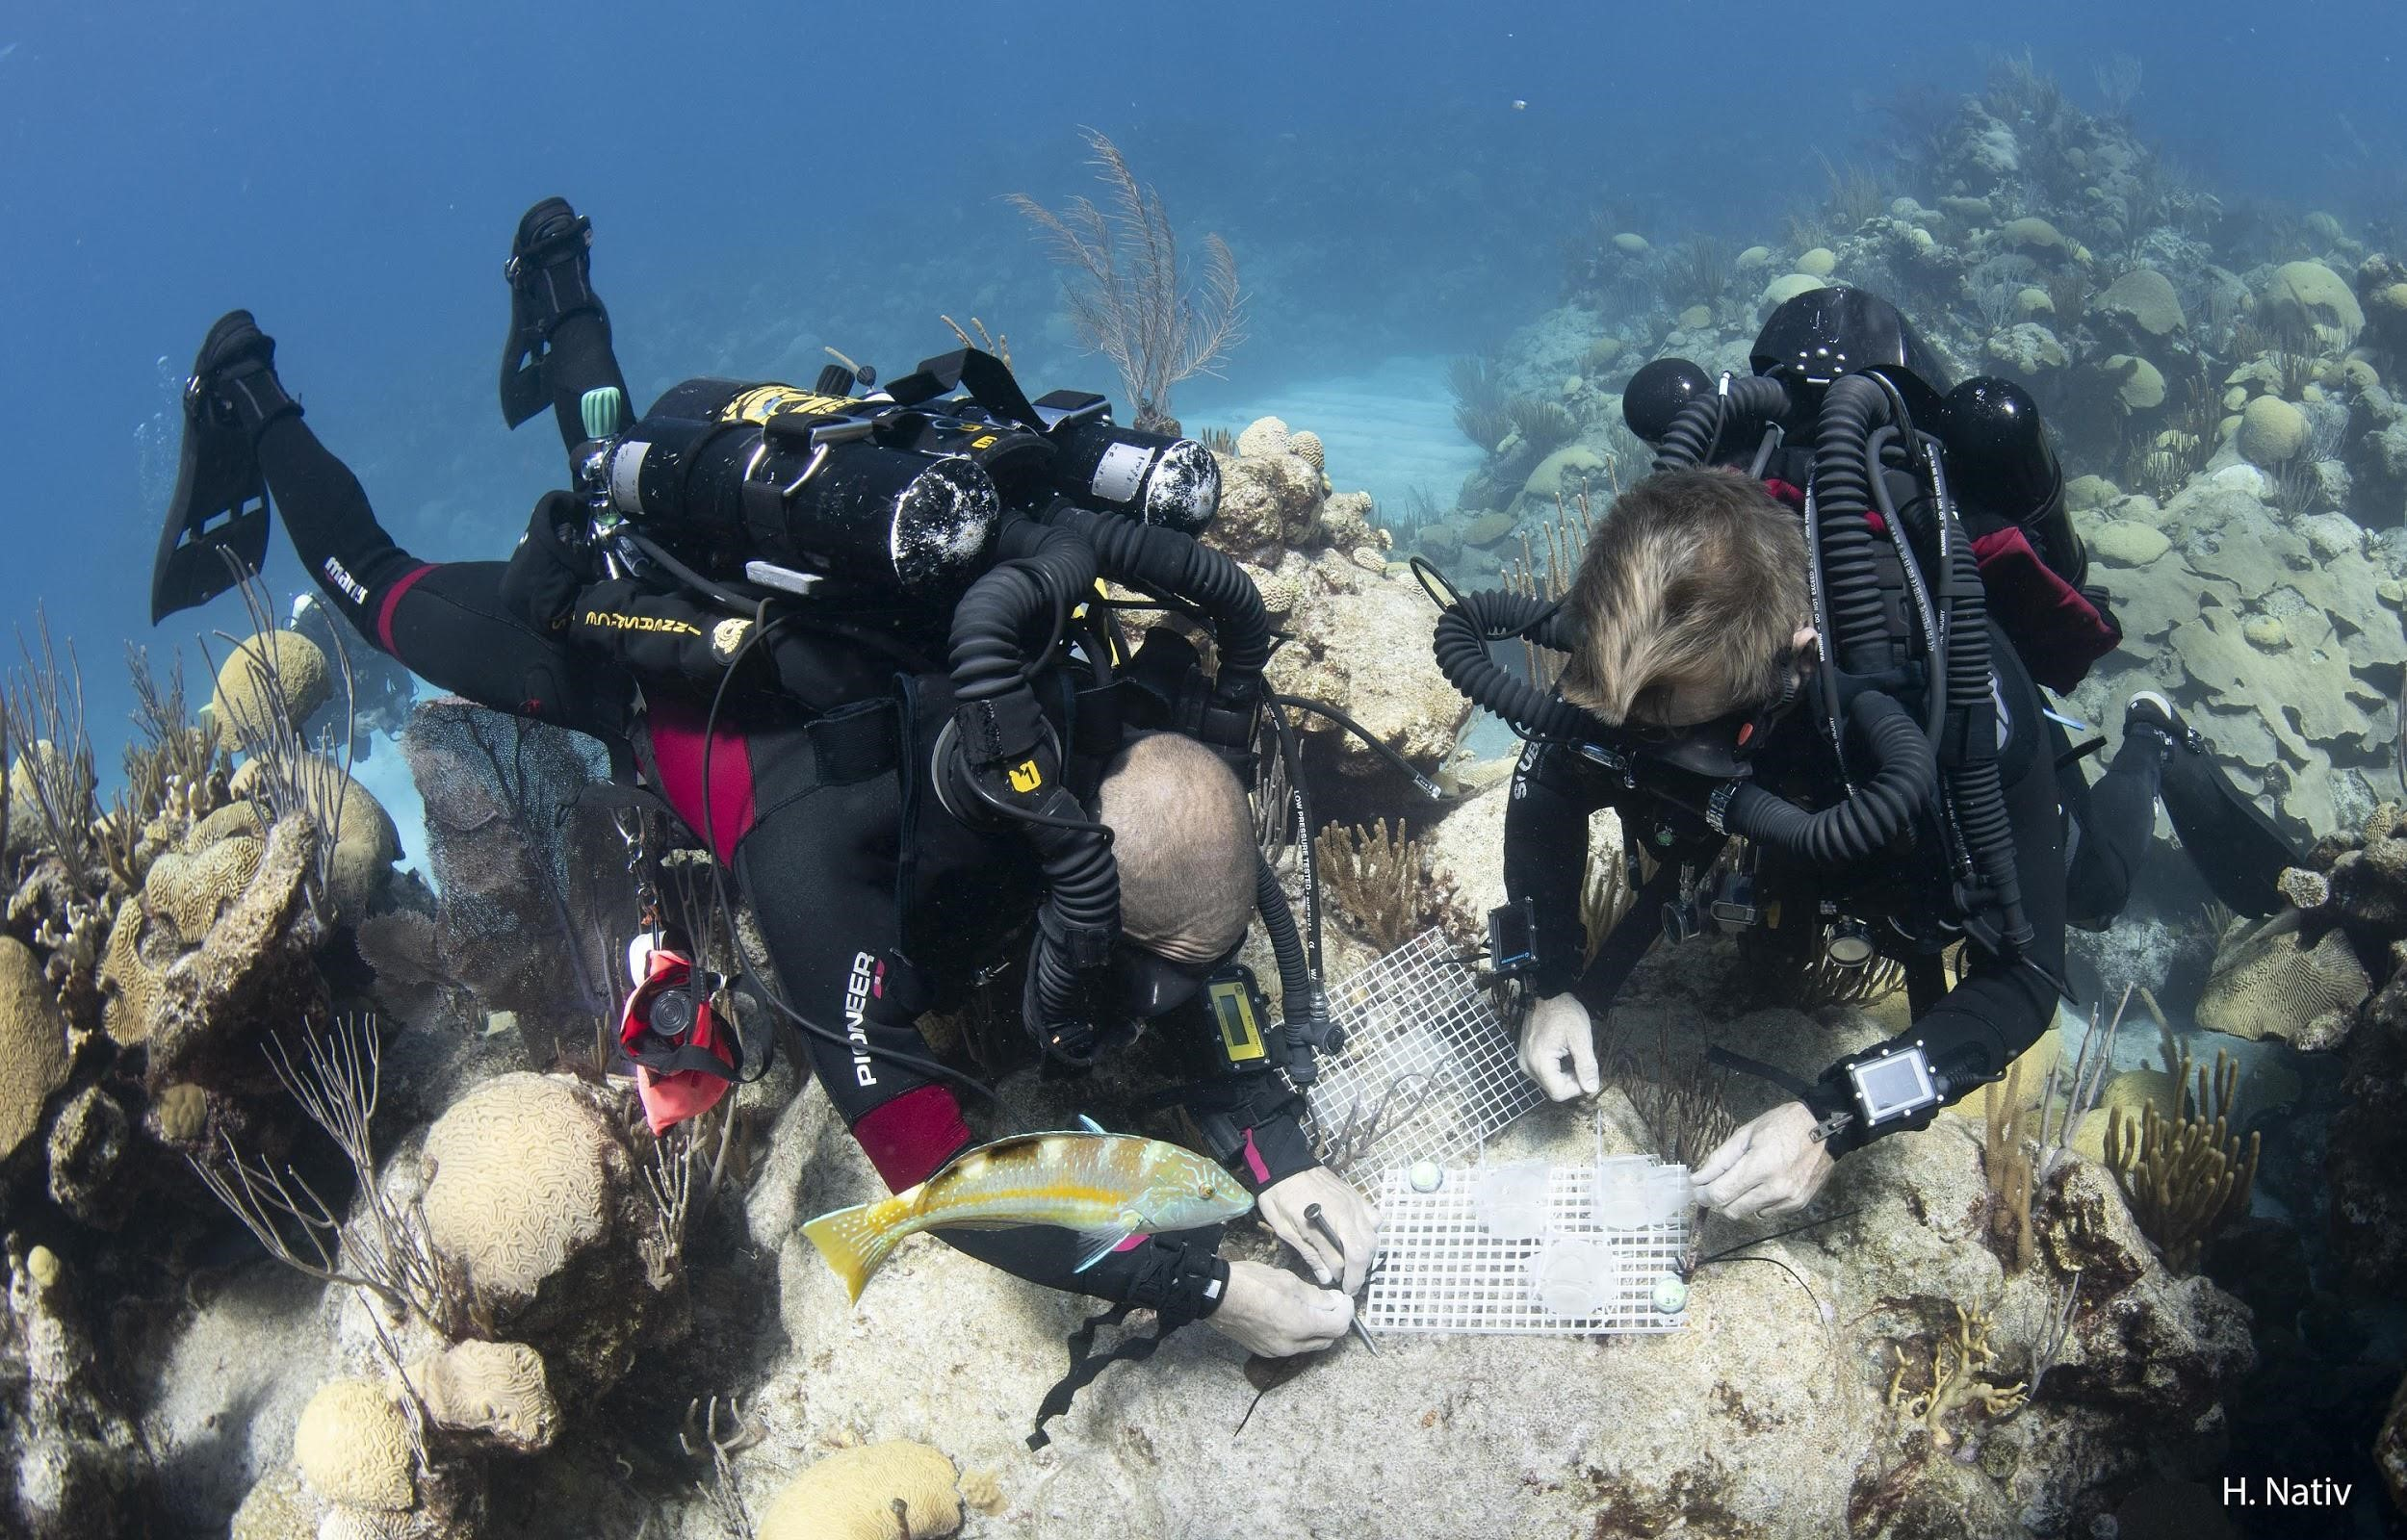 The technical dive teams from the Mass and Goodbody-Gringley labs deploying larval settlement chambers onto the reef in Bermuda to assess juvenile development.